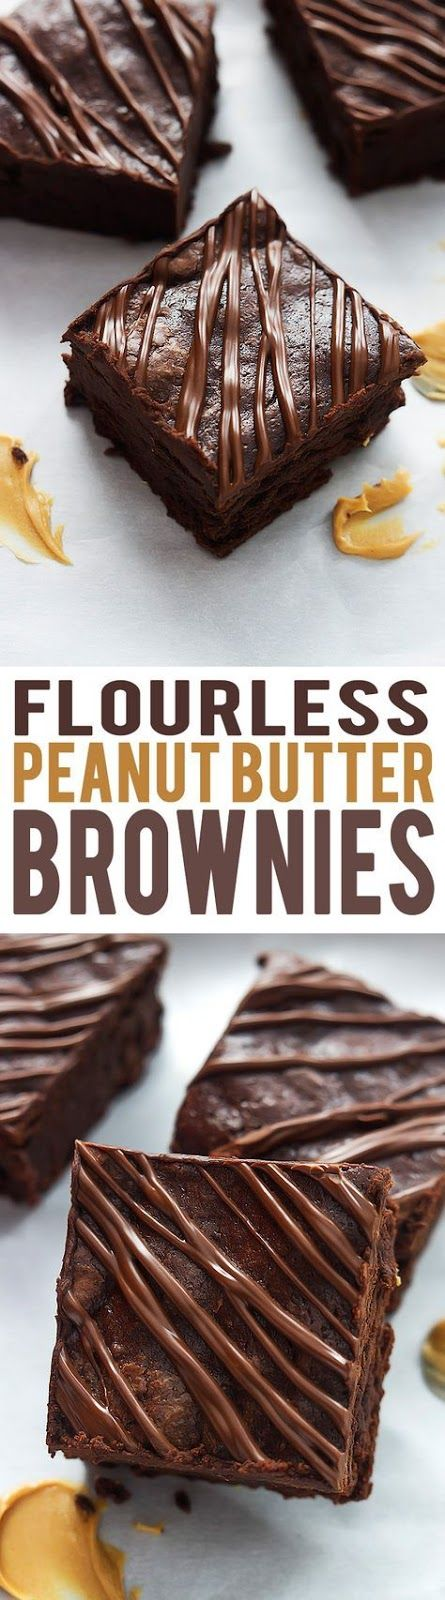 FLOURLESS FUDGEY PEANUT BUTTER BROWNIES | Cake And Food Recipe